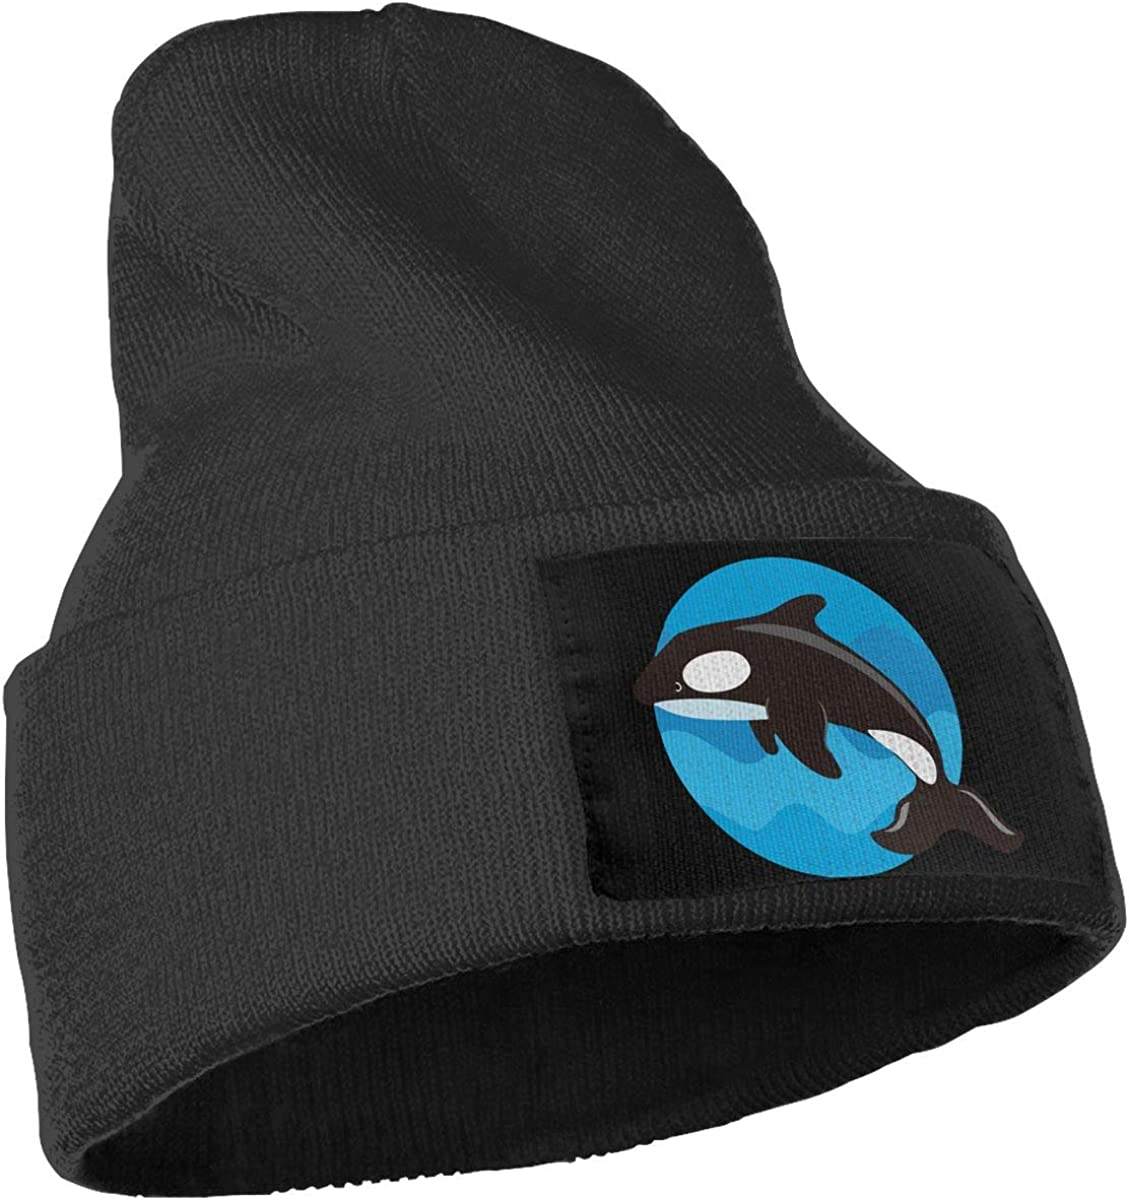 Whale Cliparts Skull Cap Men /& Women Knitting Hats Stretchy /& Soft Beanie